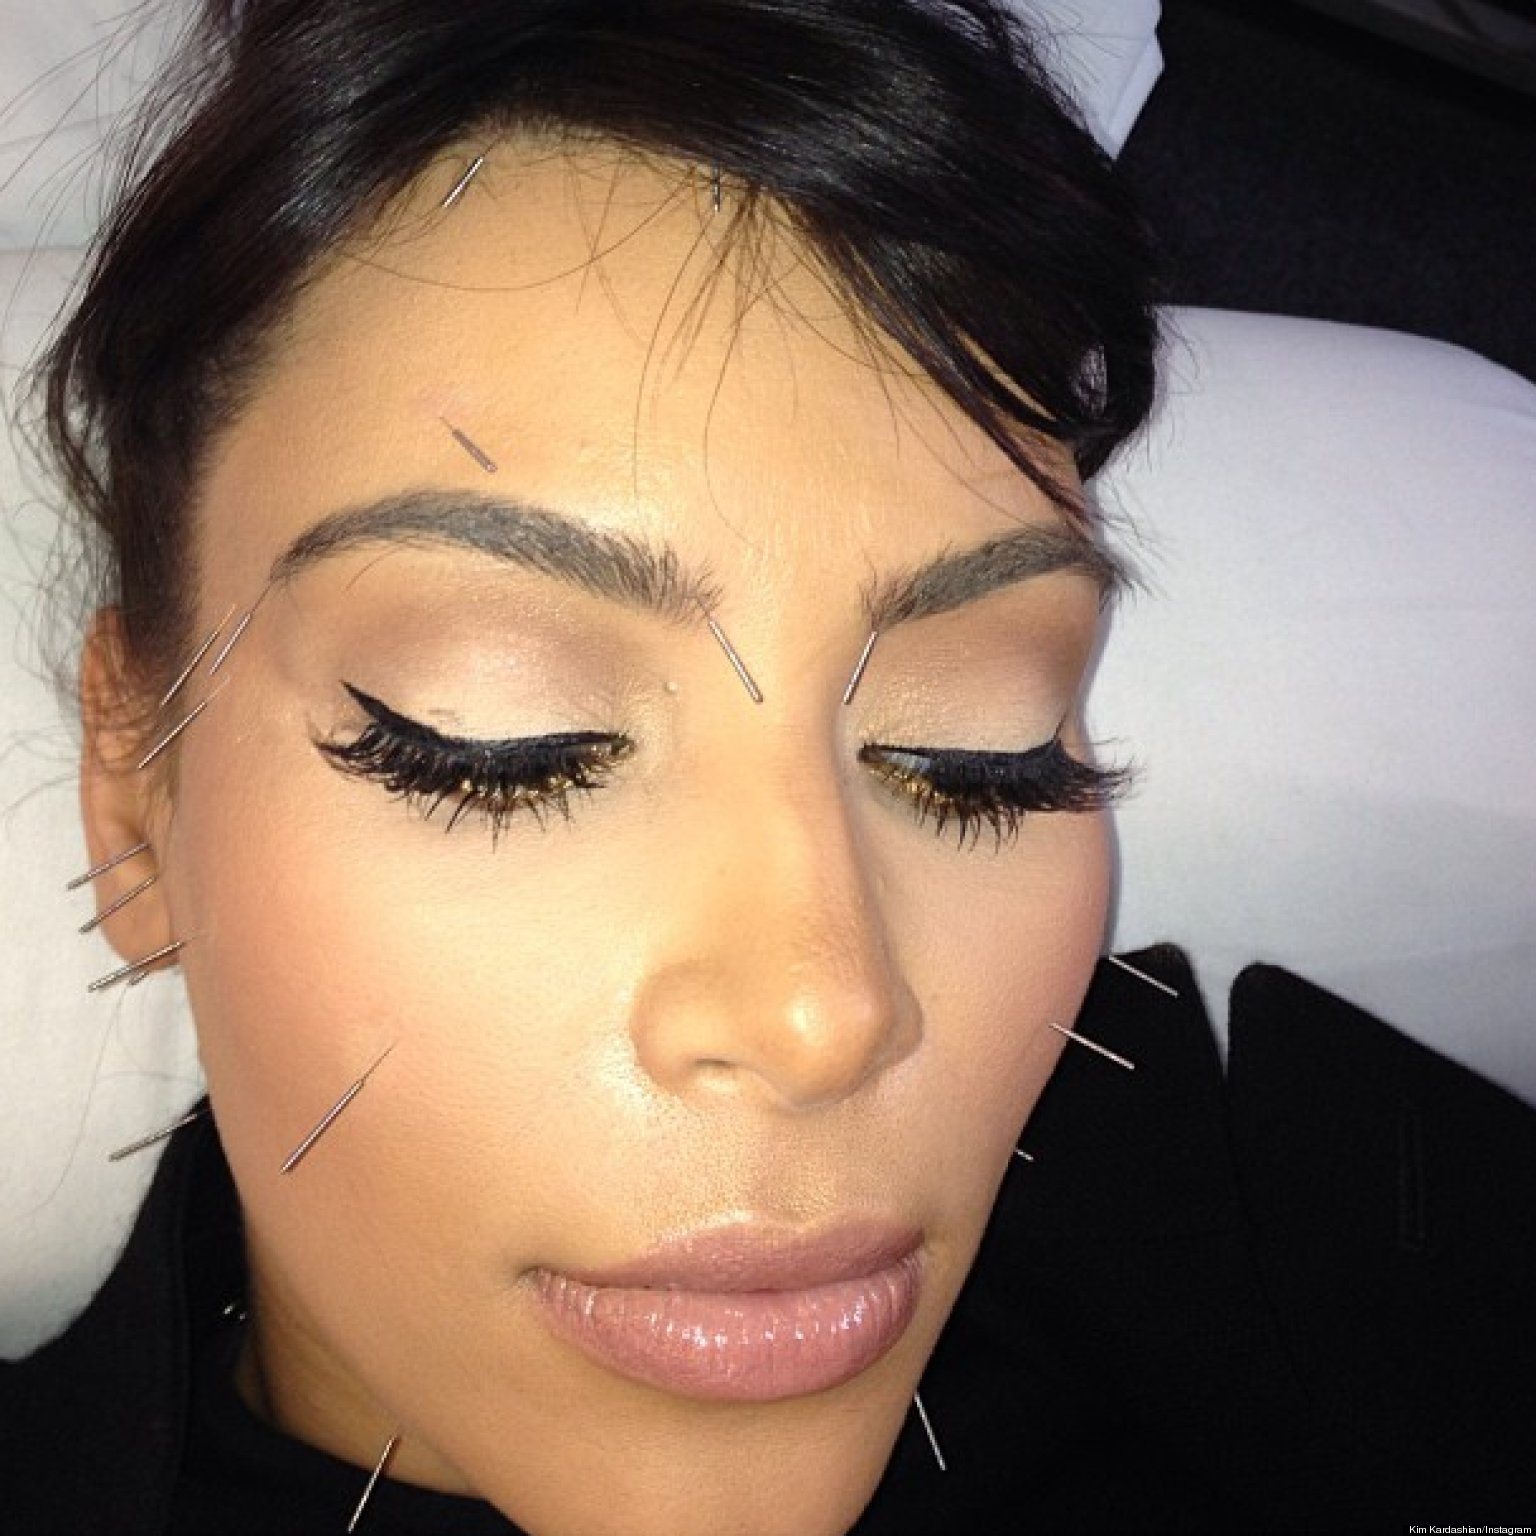 Kim Kardashian Instagrams Acupuncture Face (PHOTO) | The Huffington ...